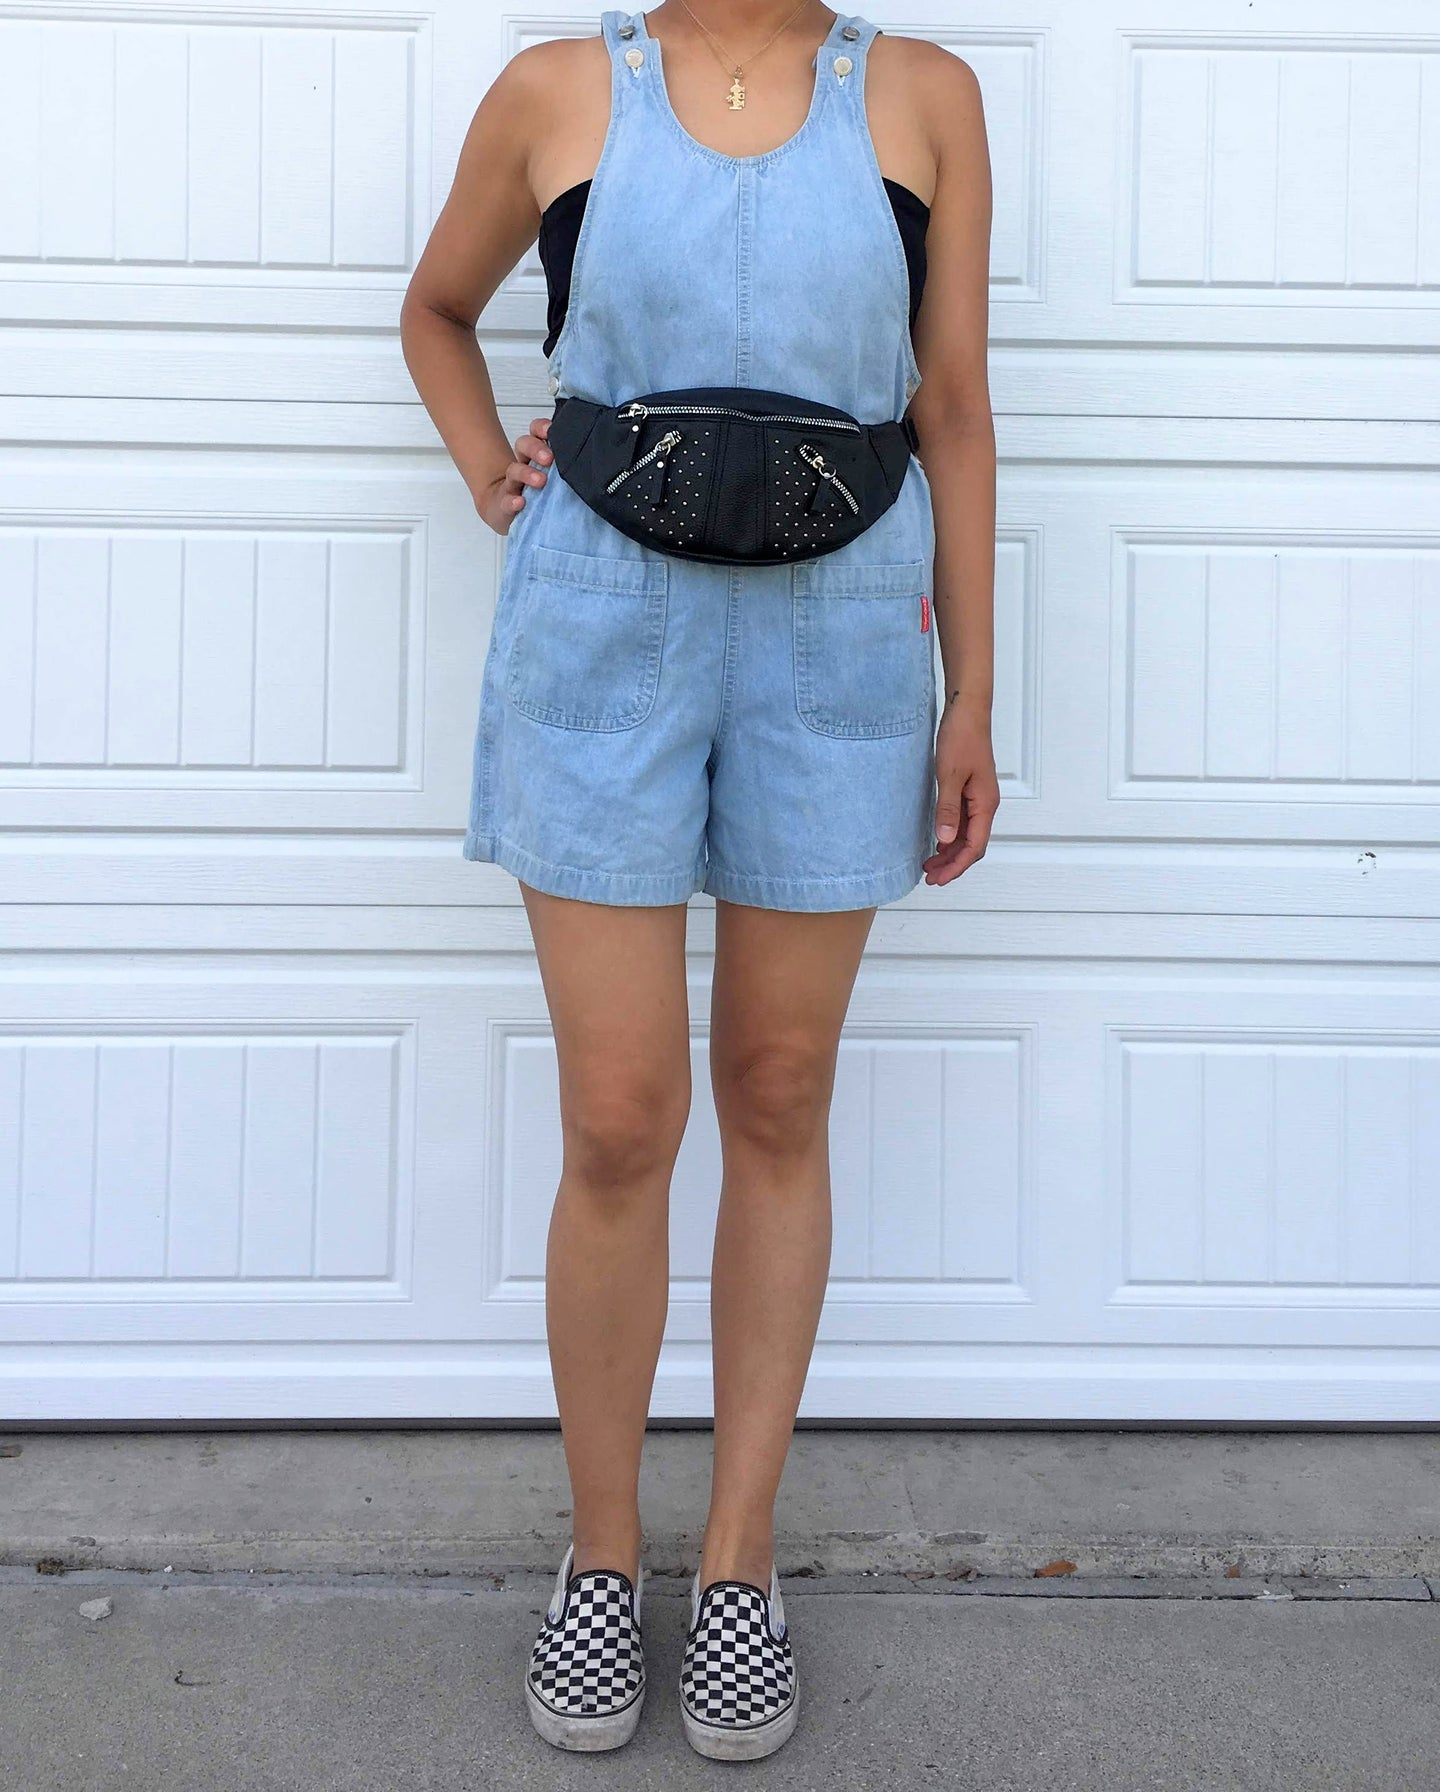 90s Denim Overall Shorts - Medium